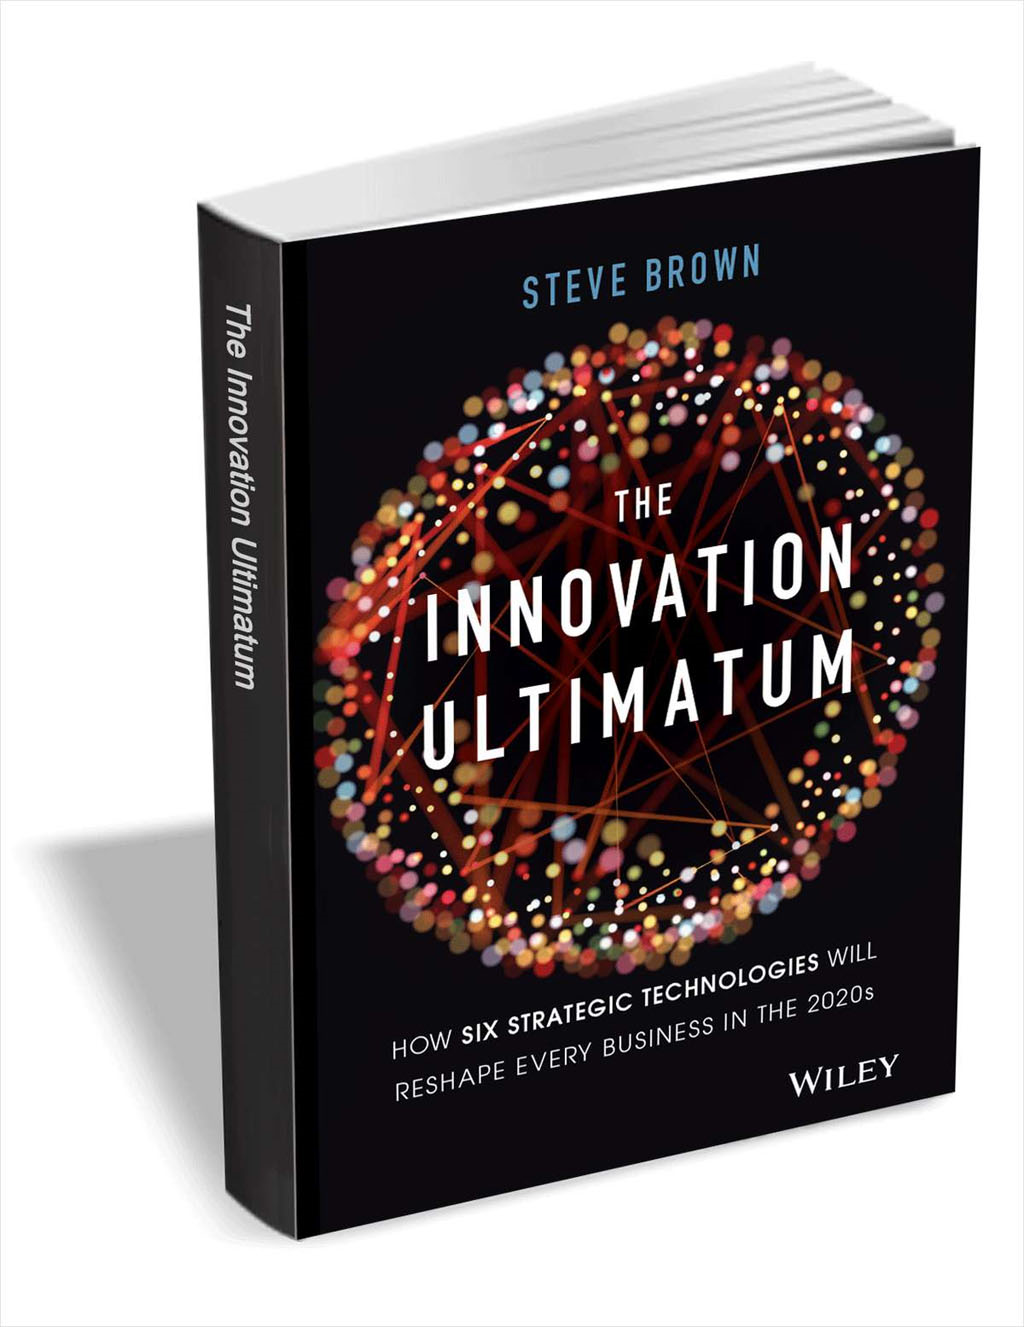 The Innovation Ultimatum: How six strategic technologies will reshape every business in the 2020s ($17.00 Value) FREE for a Limited Time Screenshot